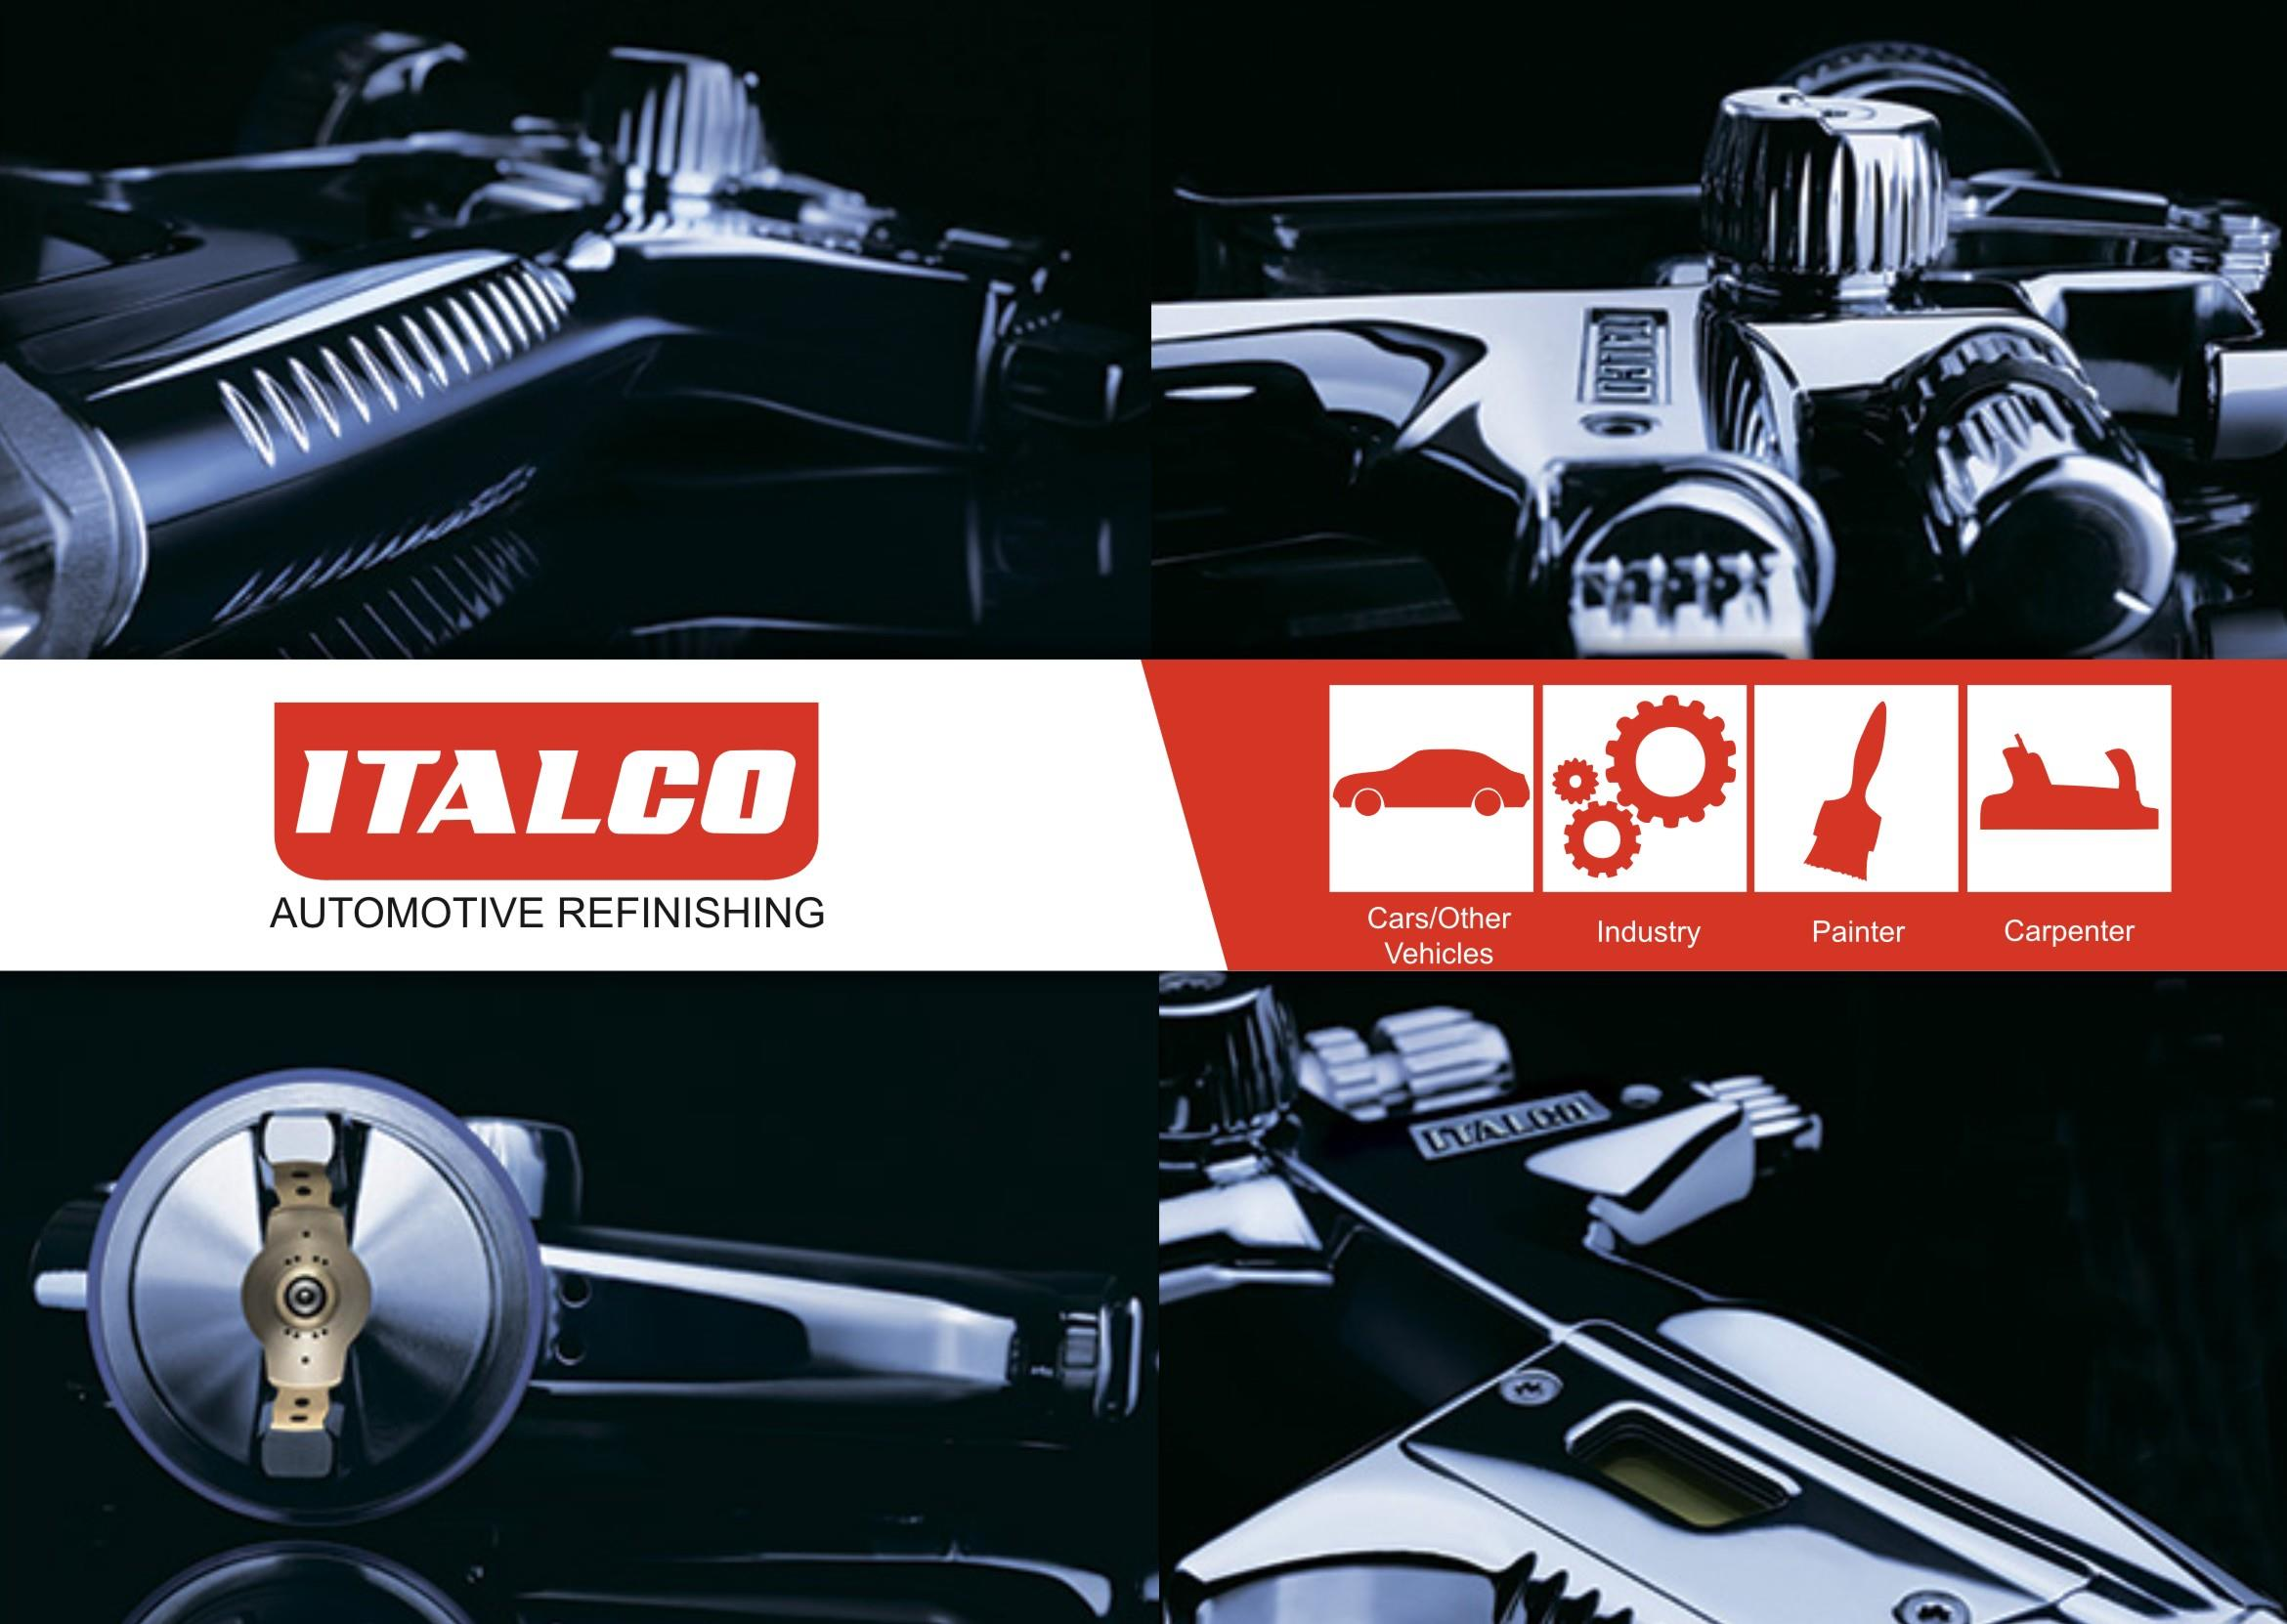 brand_body_italco_main_desktop_@2x